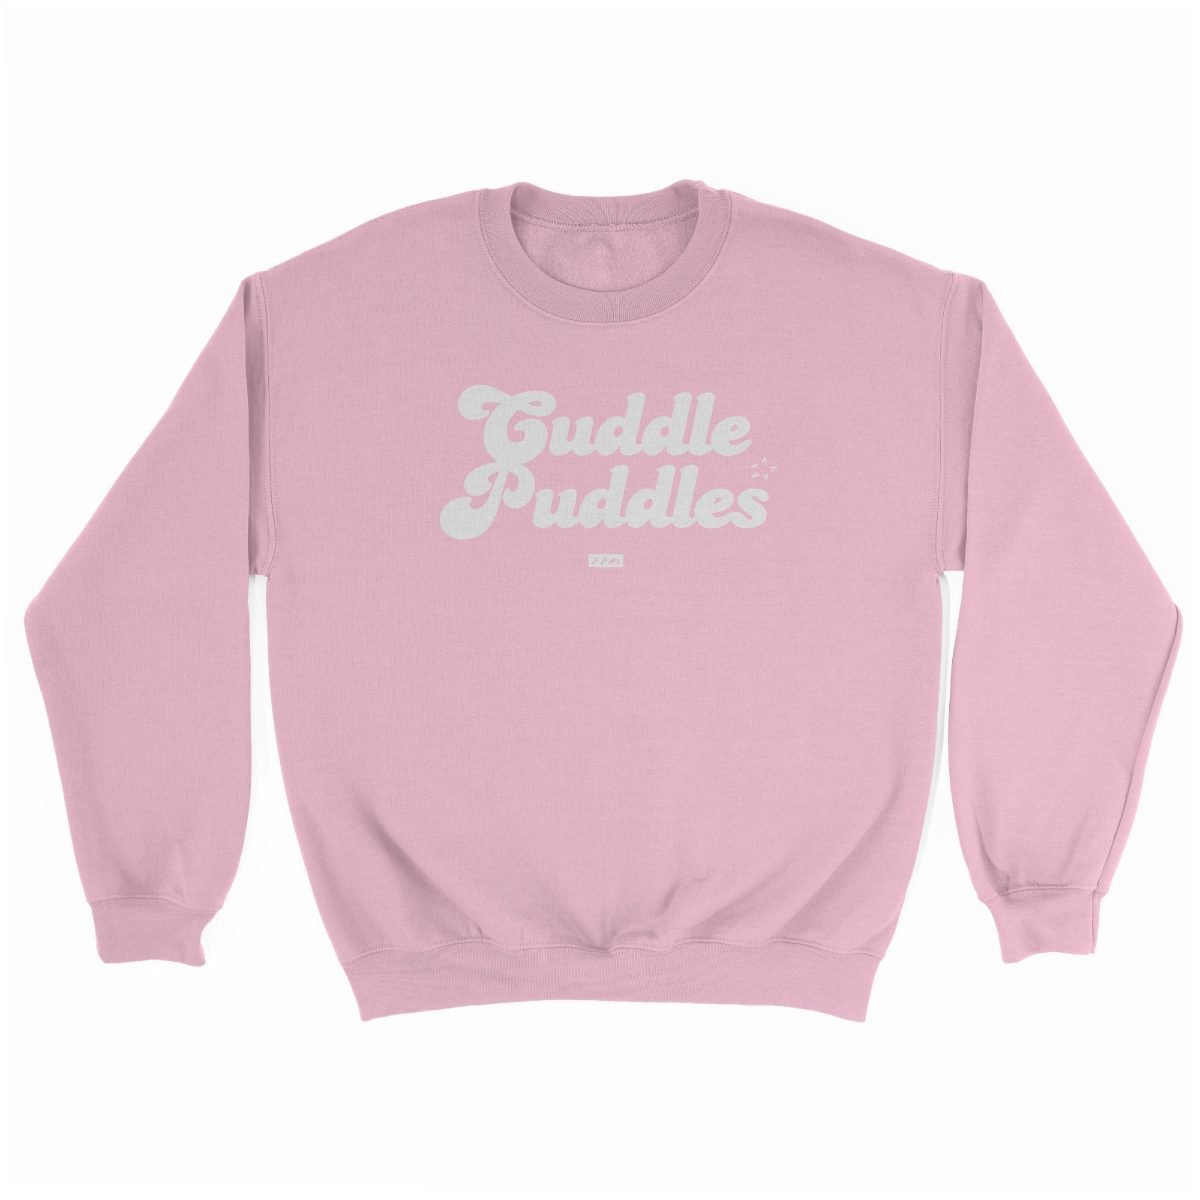 CUDDLE PUDDLE PARTY comfy sweatshirt in pink at kikicutt.com